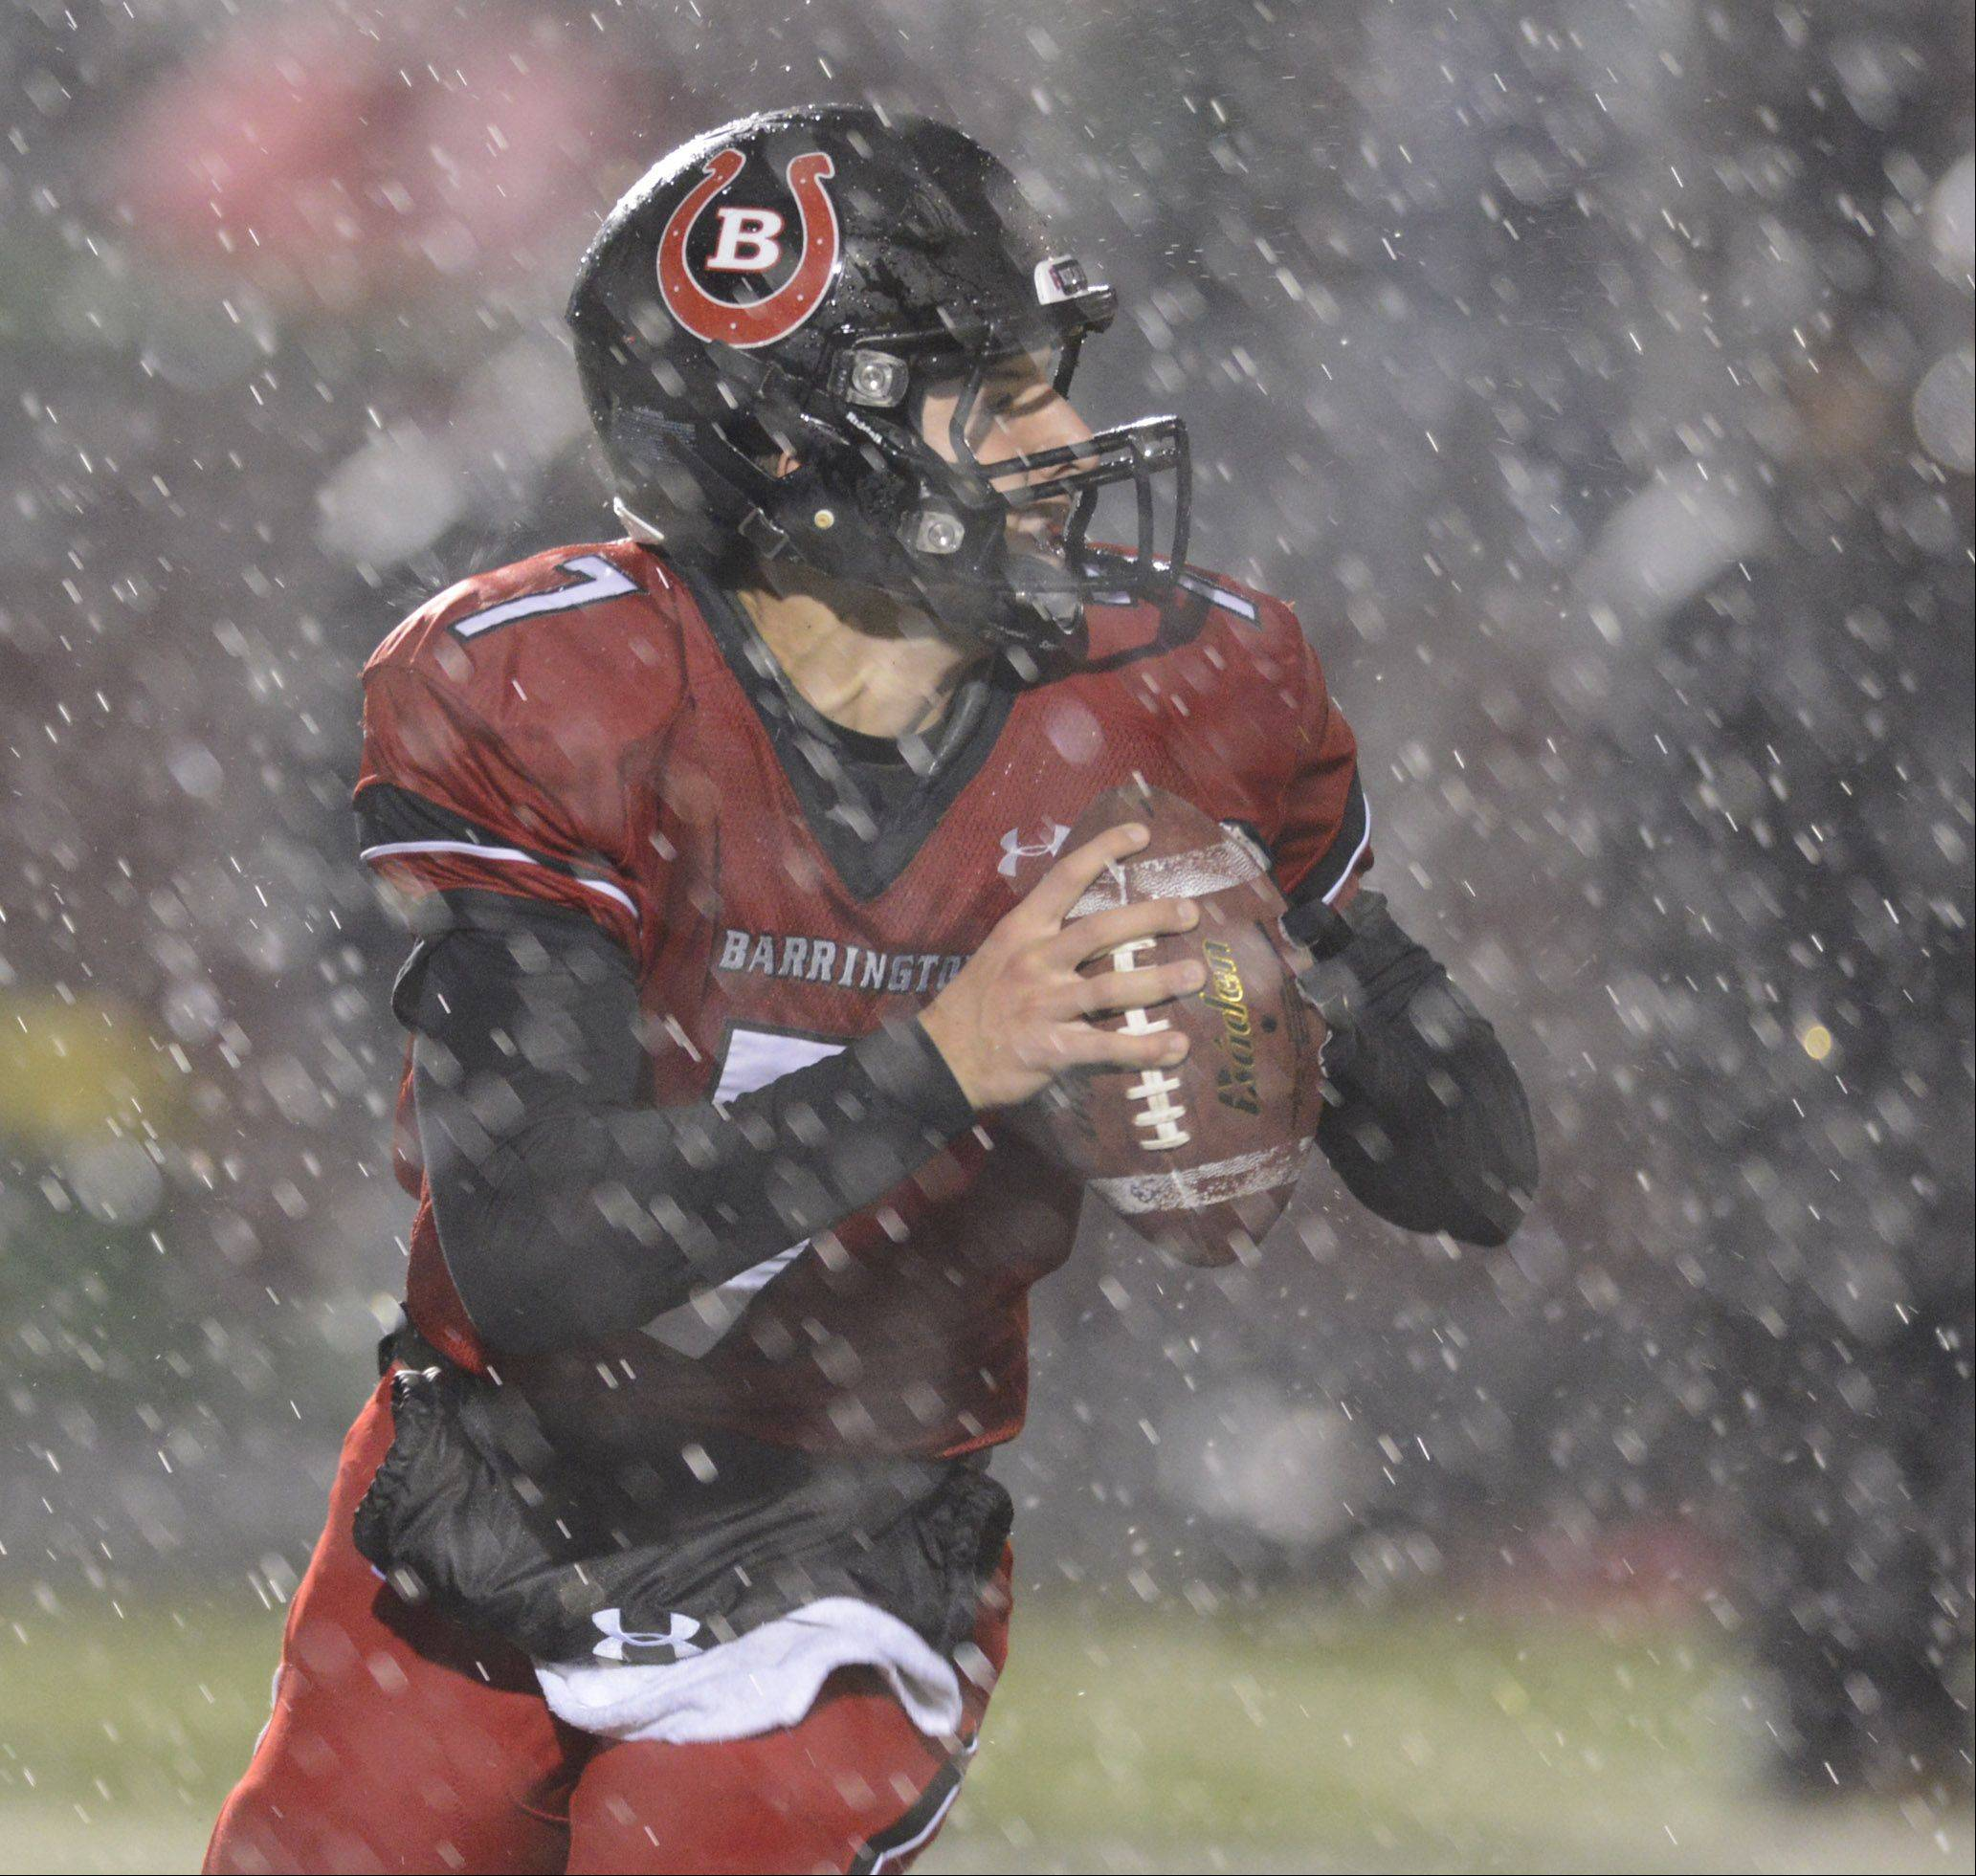 Barrington quarterback Daniel Kubiuk looks for an open teammate in pouring rain and winds up throwing an interception during Saturday's Class 8A playoff game against Stevenson Saturday.